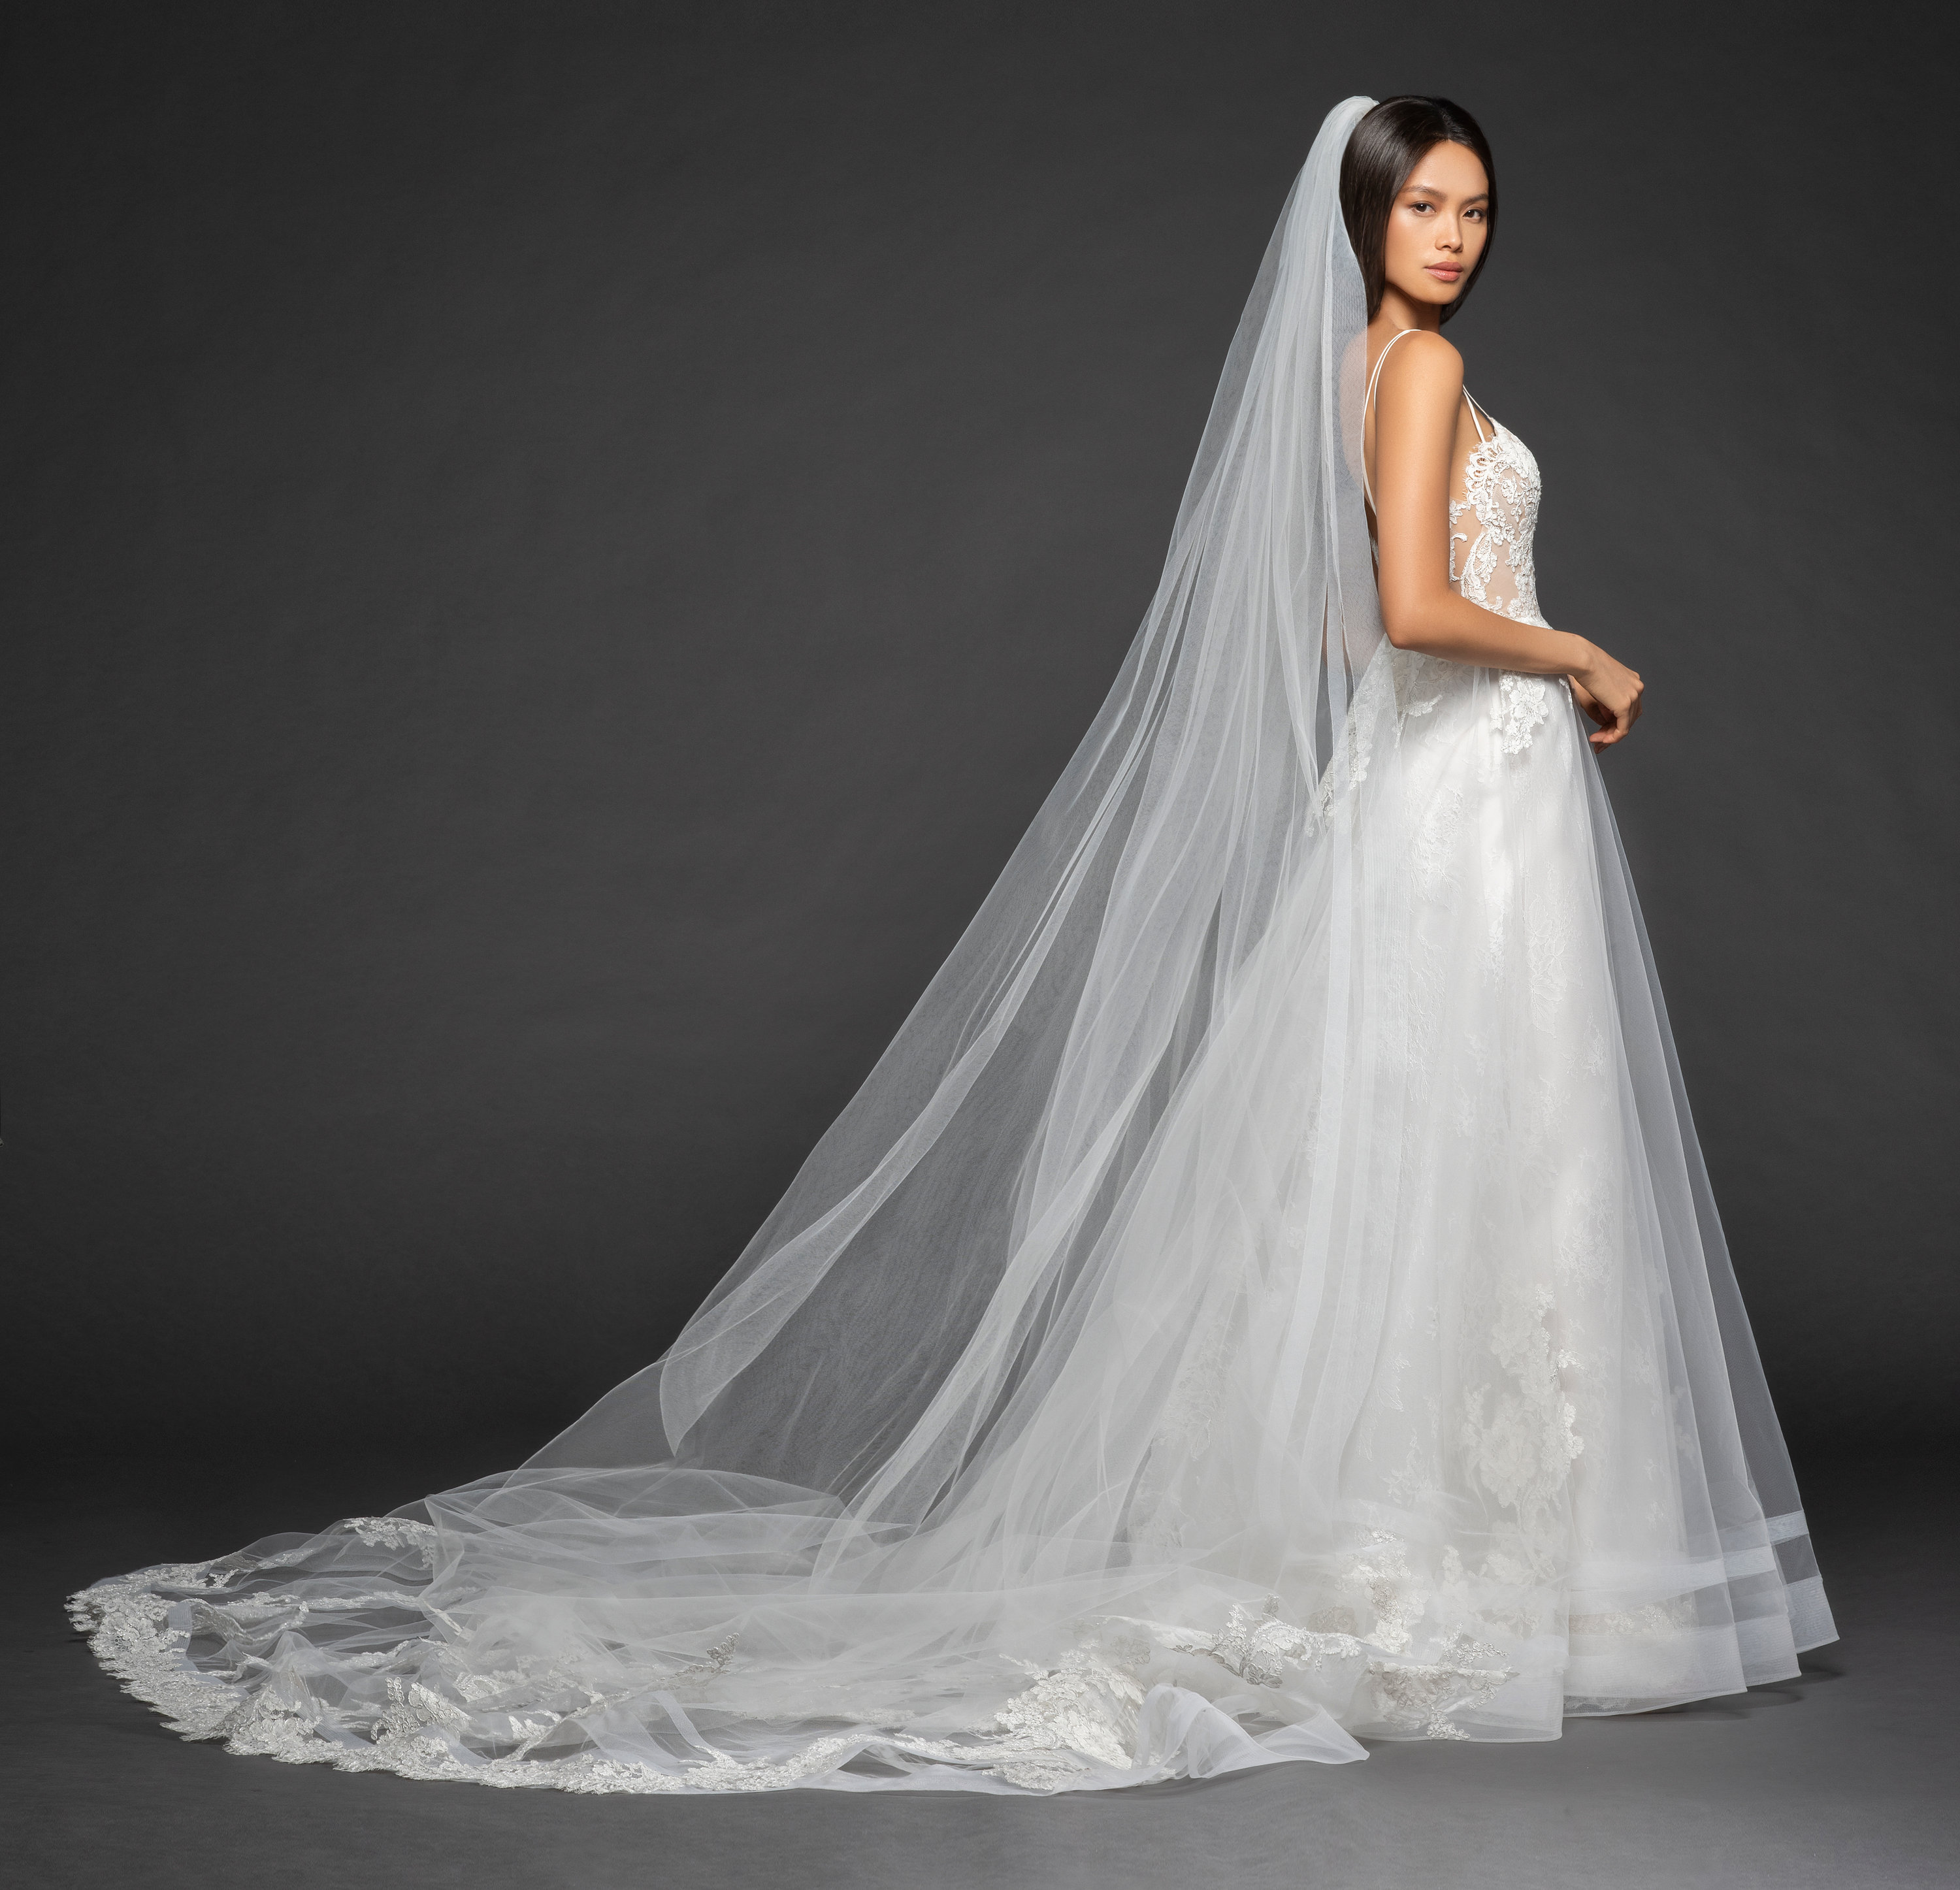 Bridal Gowns and Wedding Dresses by JLM Couture - Style L854 Estelle